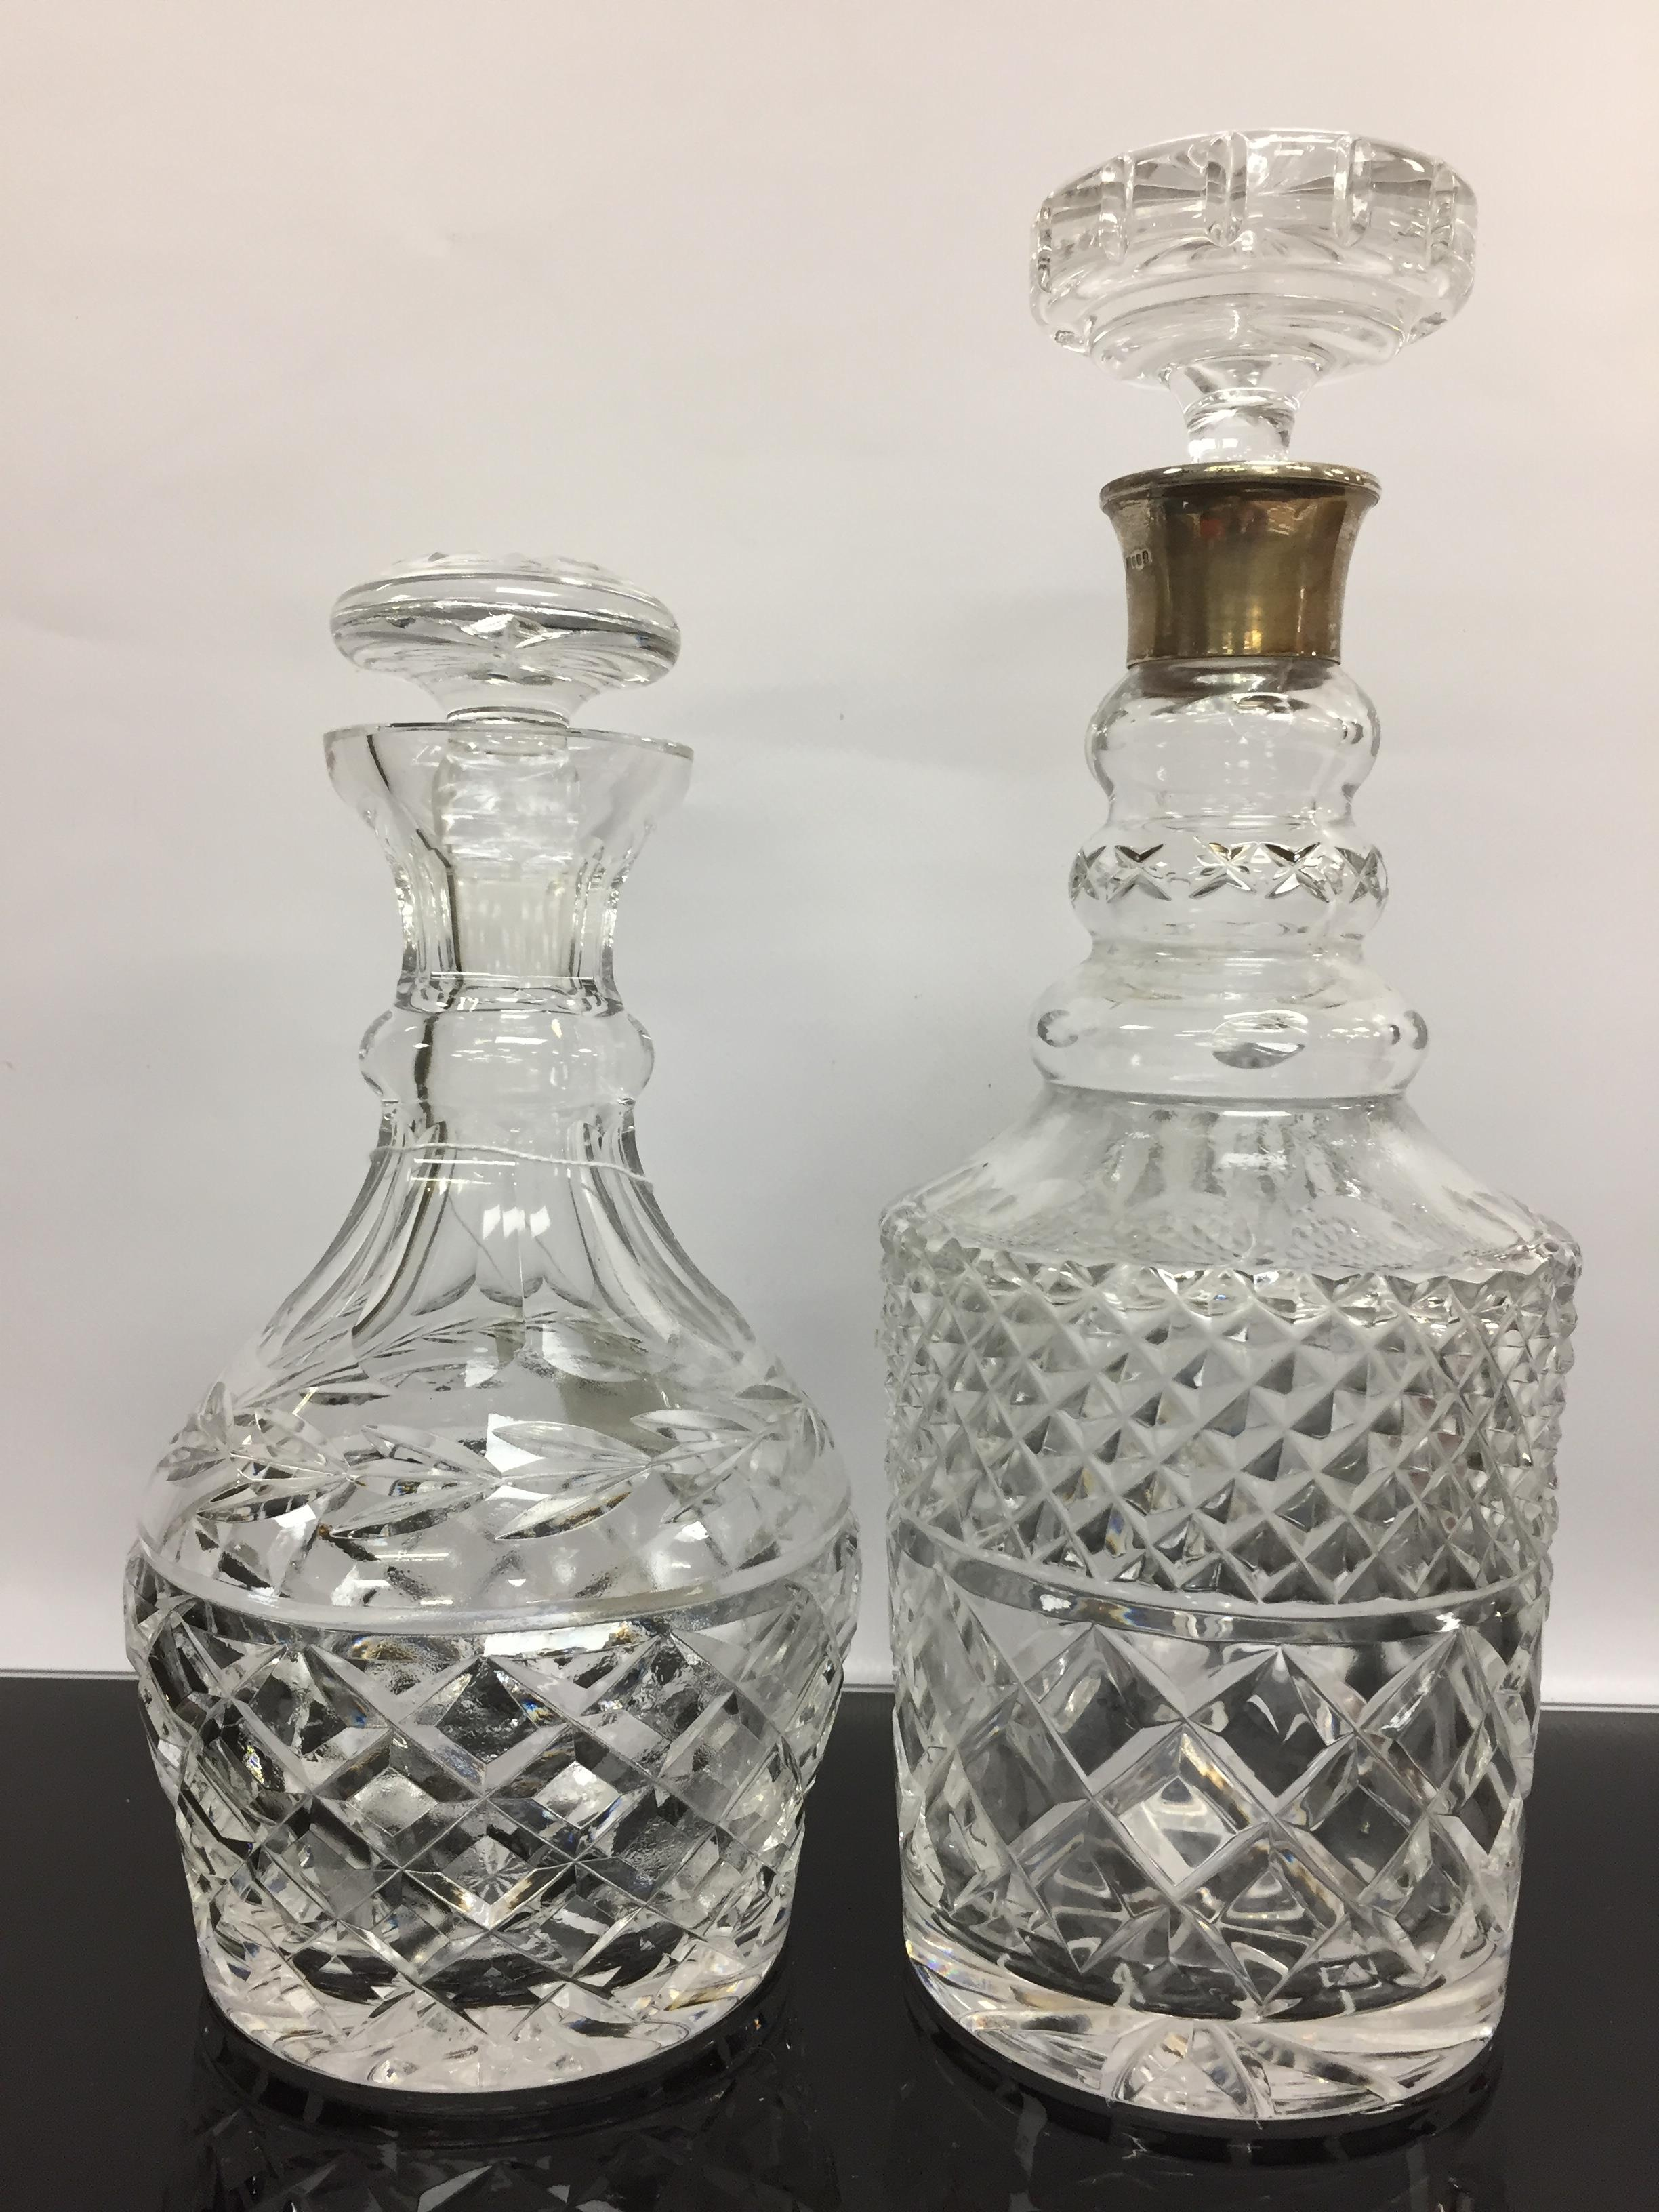 Lot 81 - TWO CUT GLASS LEAD CRYSTAL DECANTERS ONE WITH SILVER COLLAR